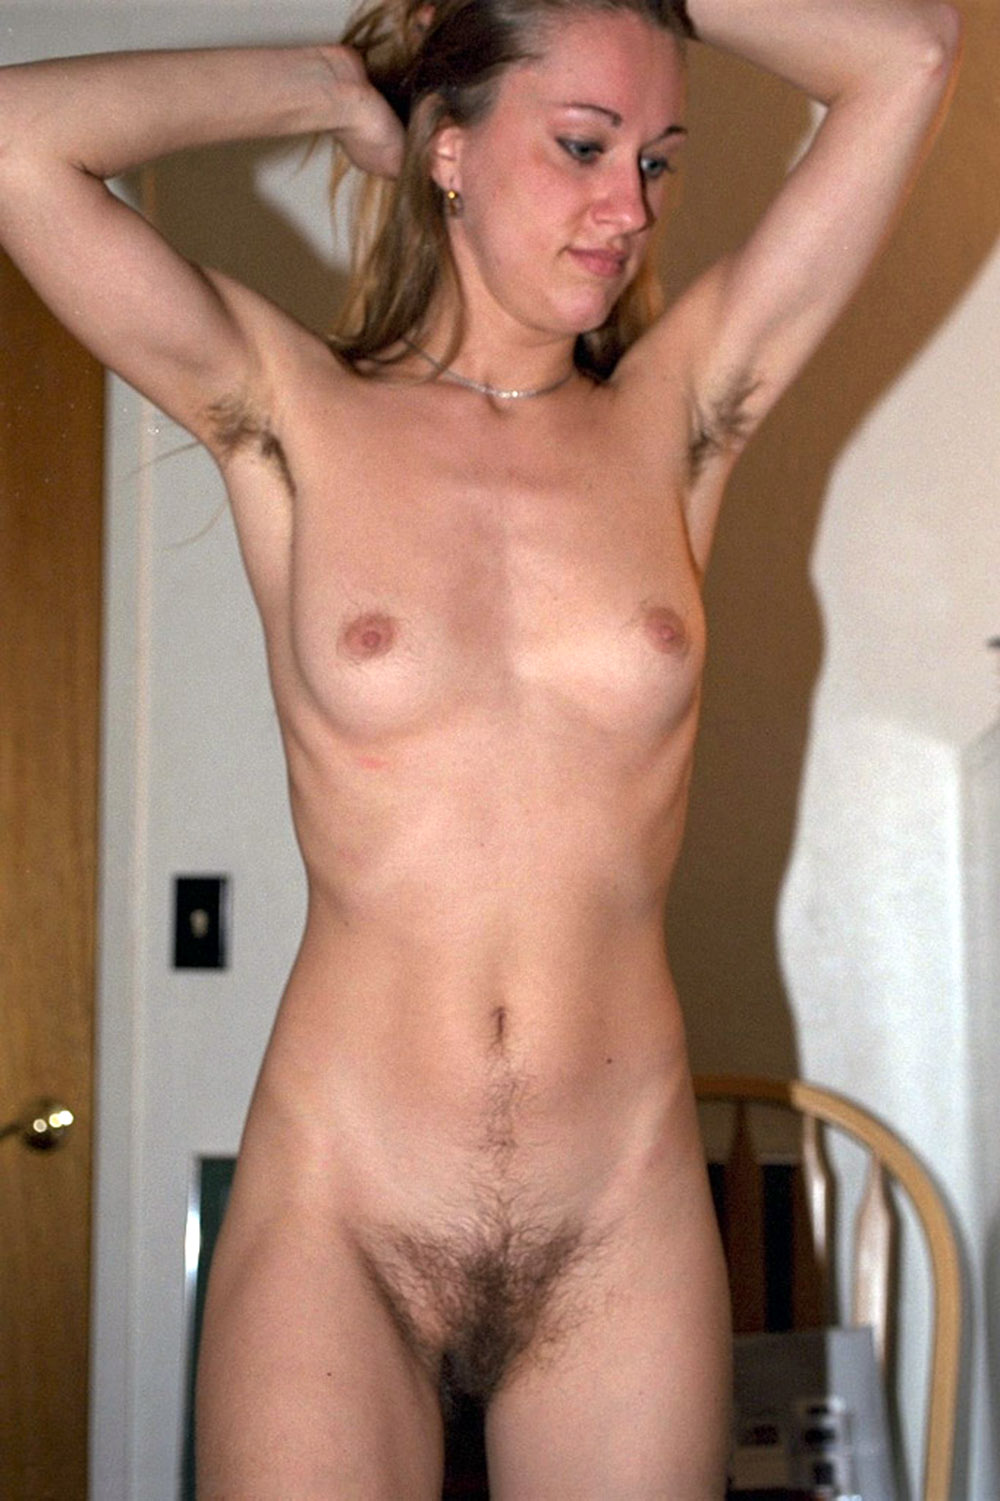 Swedish girl nude woman hairy pussy are